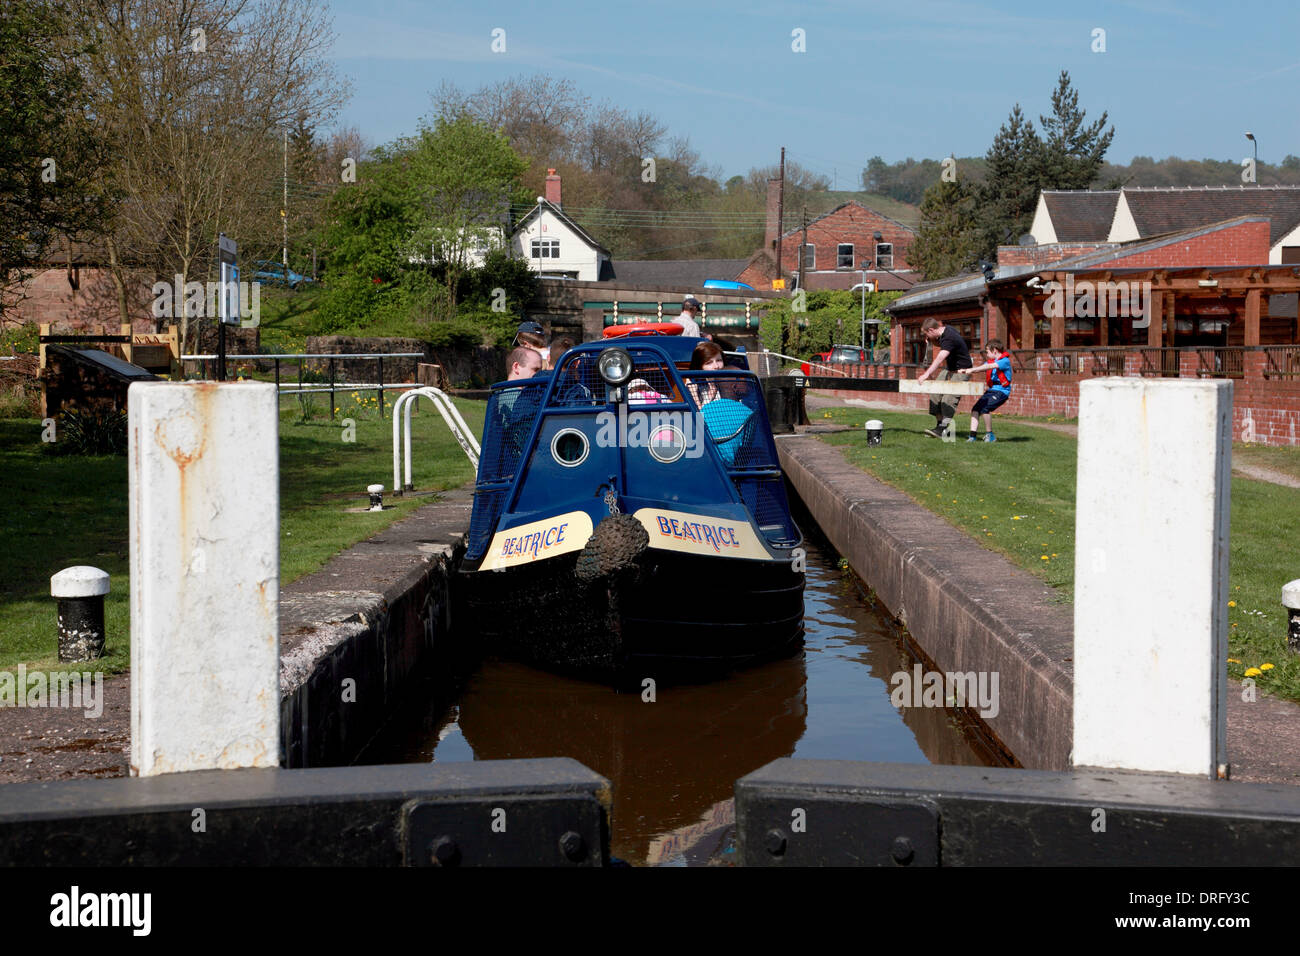 A narrowboat in lock 13 of the Cheddleton Locks on the Caldon Canal - Stock Image